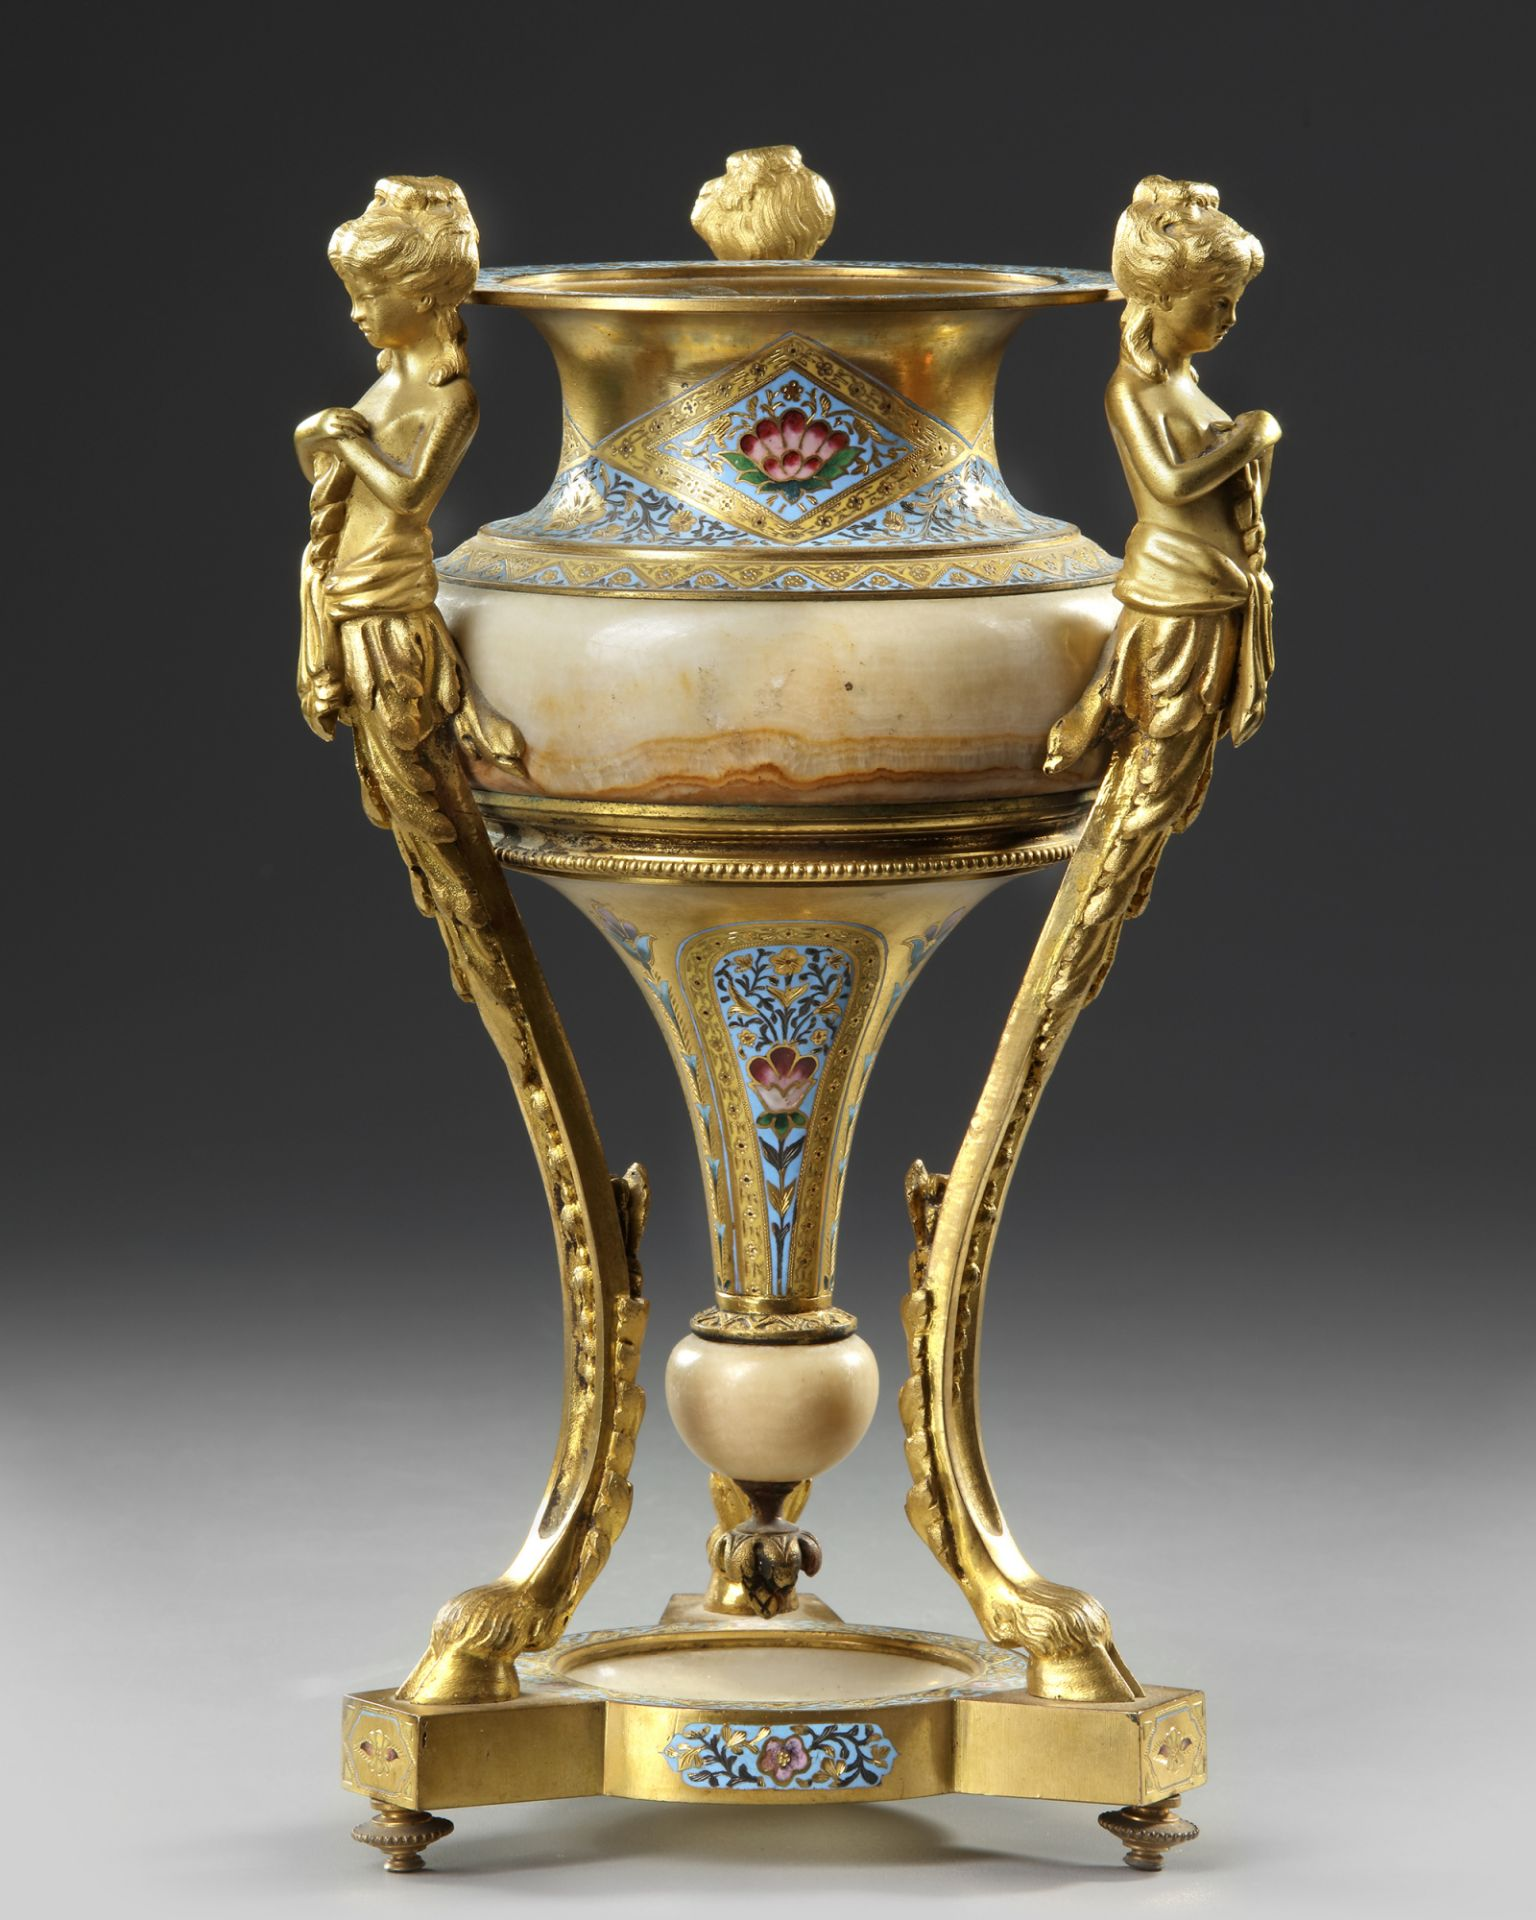 A BRONZE STANDING CUP, 19TH CENTURY